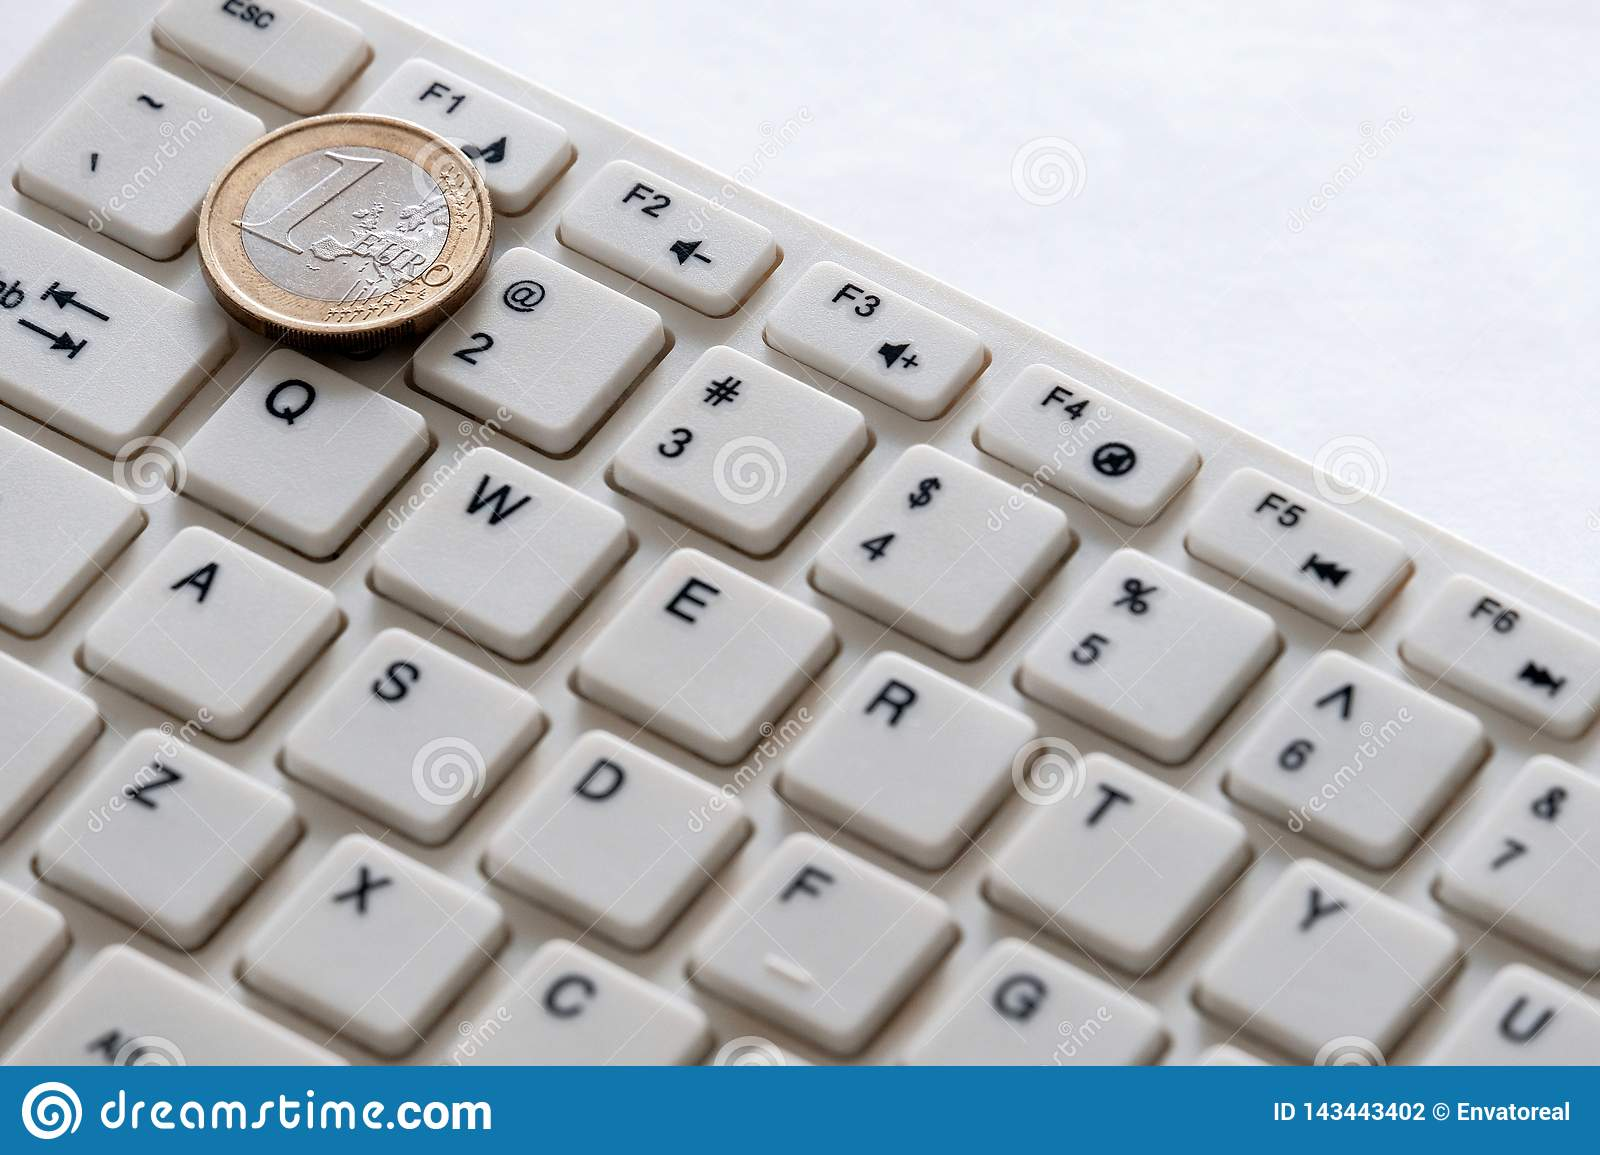 Computer keyboard and one euro coin close up on a white background. Internet business. Currency exchange